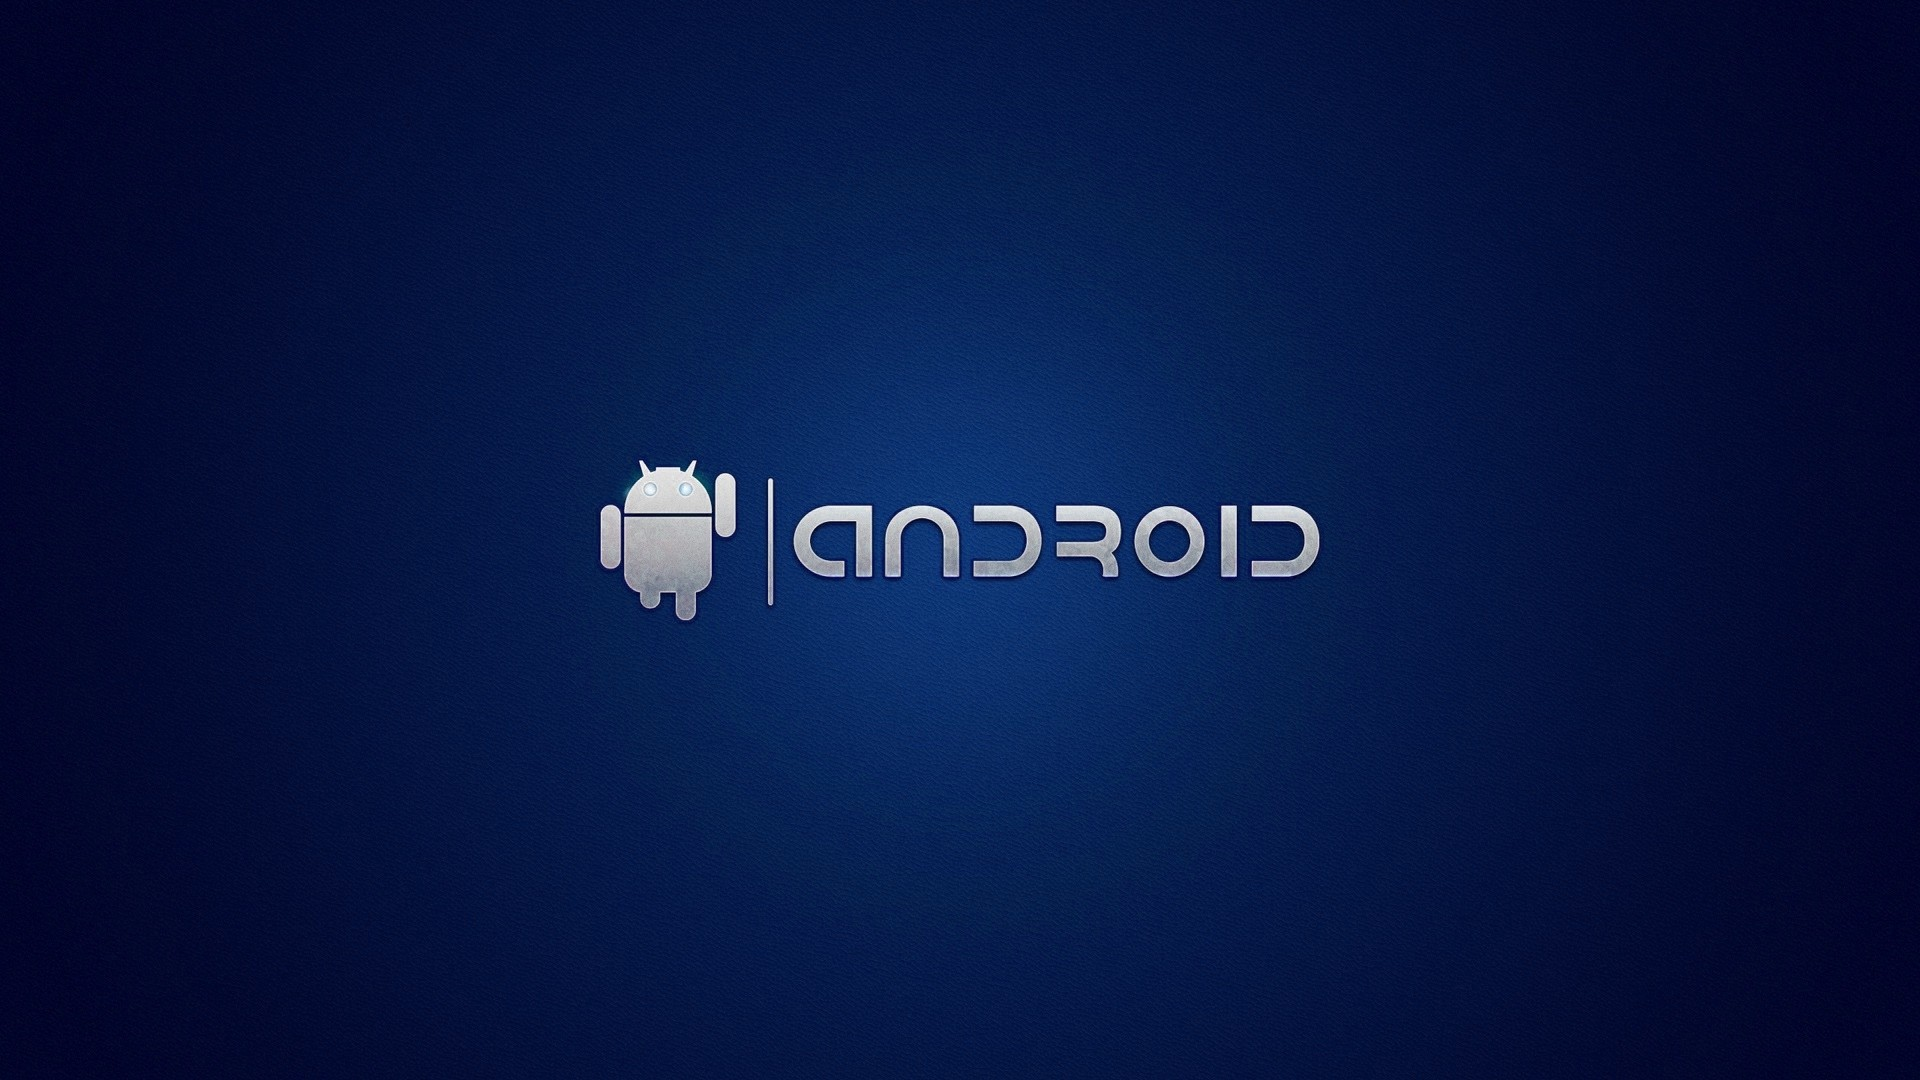 wallpapers android wallpaper blue 1